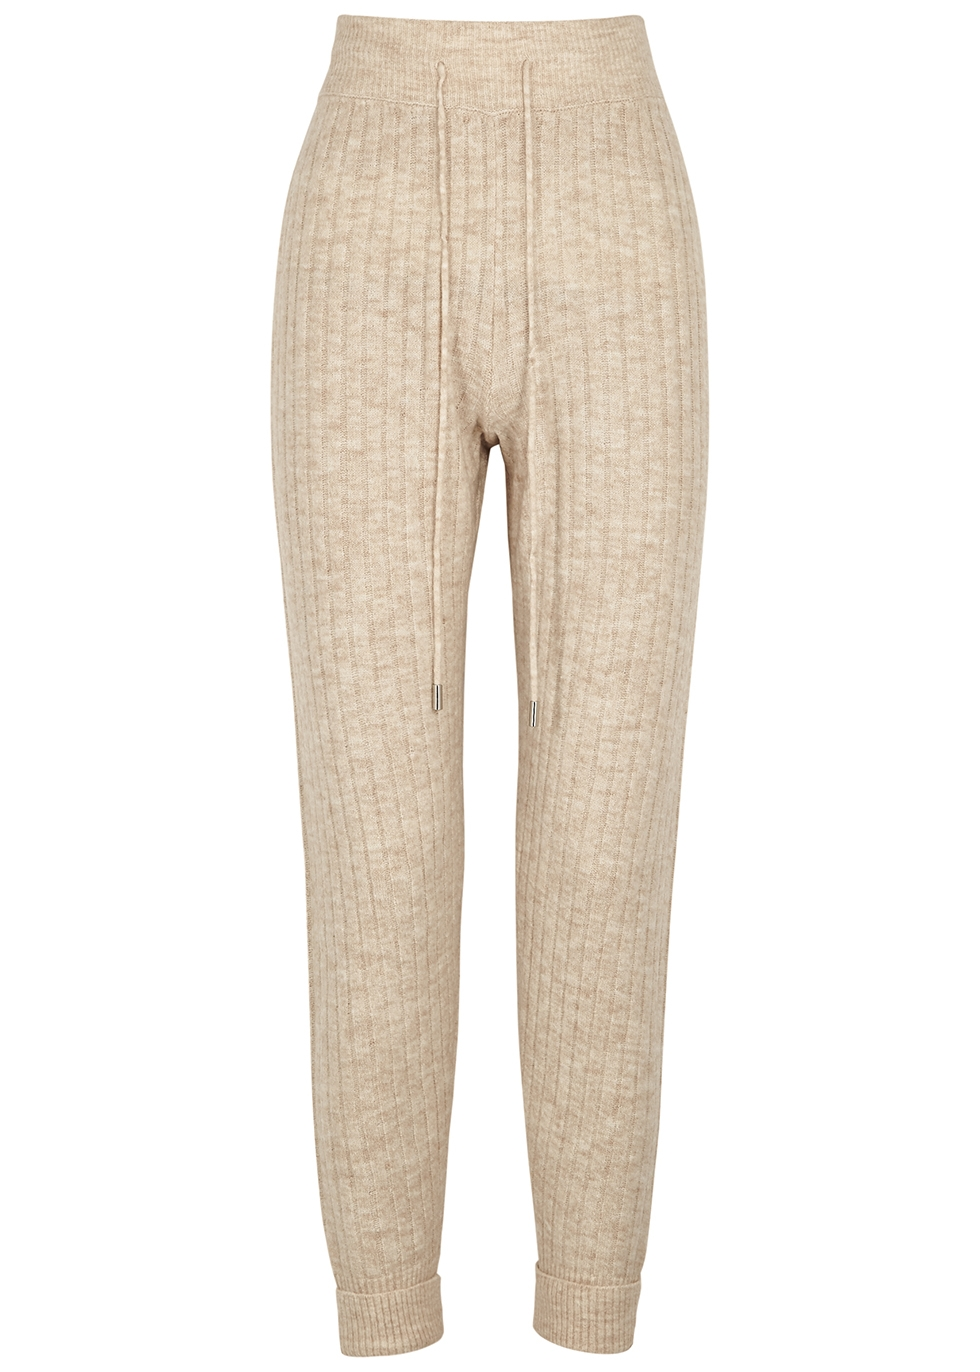 Around The Clock cream ribbed-knit trousers